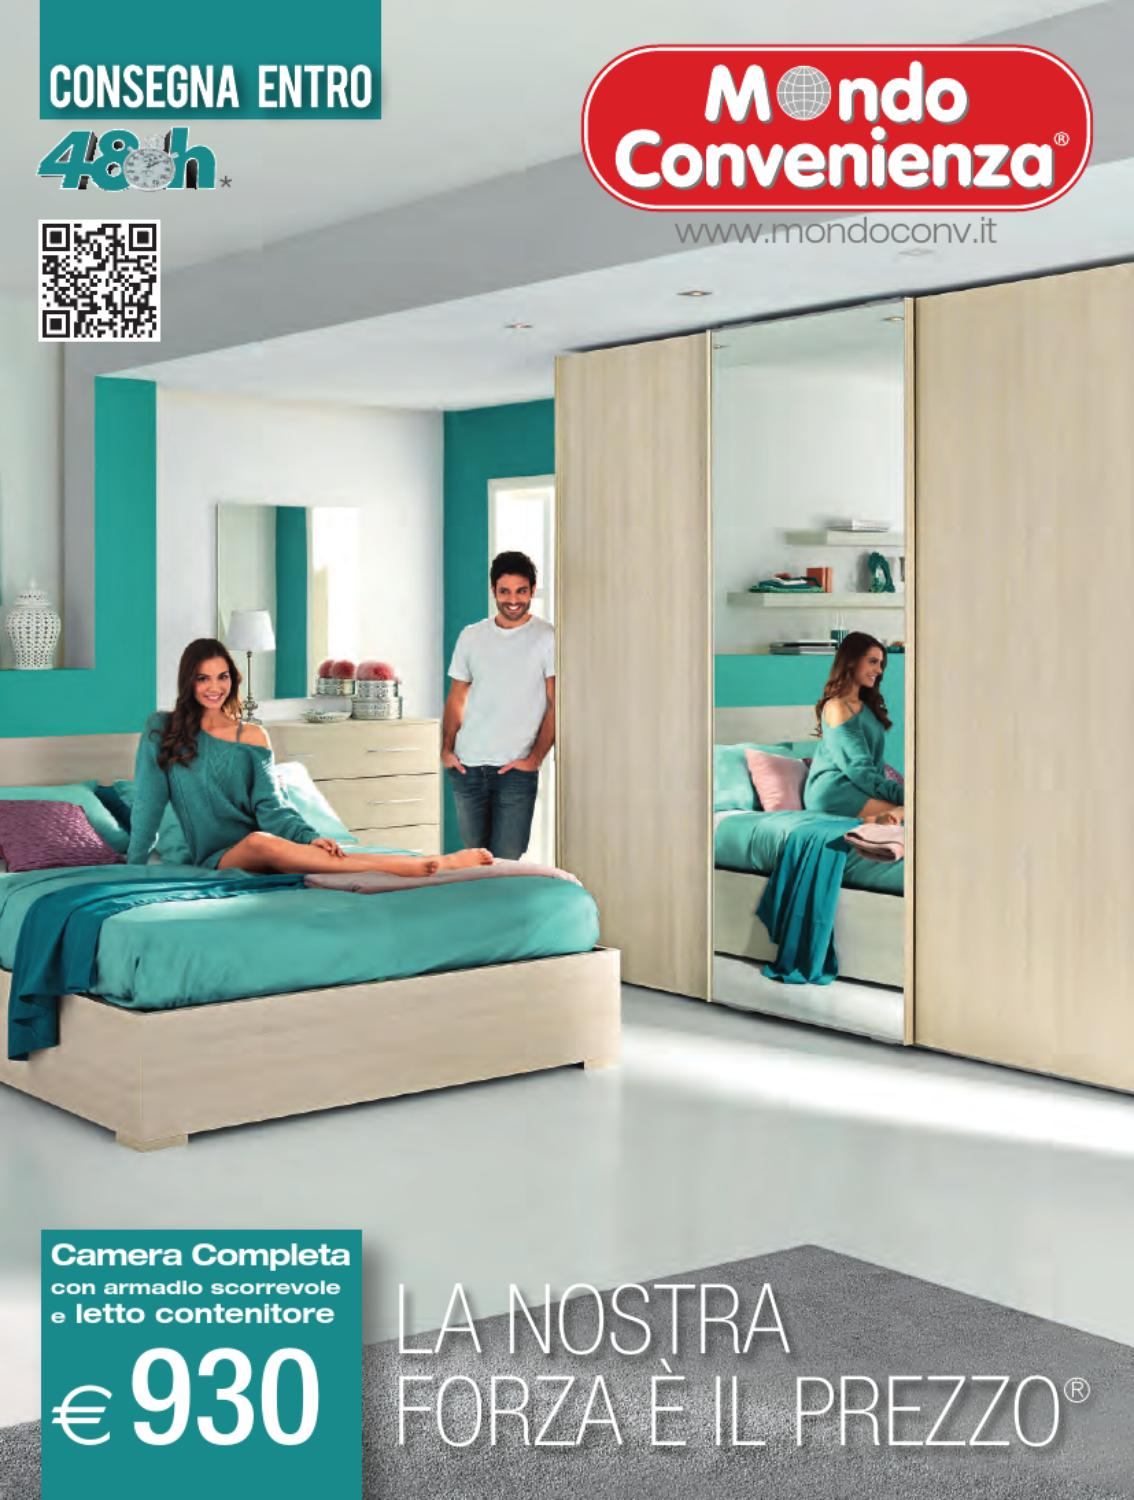 Mondo Convenienza Cassettiere Interne.Mondo Convenienza Catalogo Generale 2013 By Catalogopromozioni Com